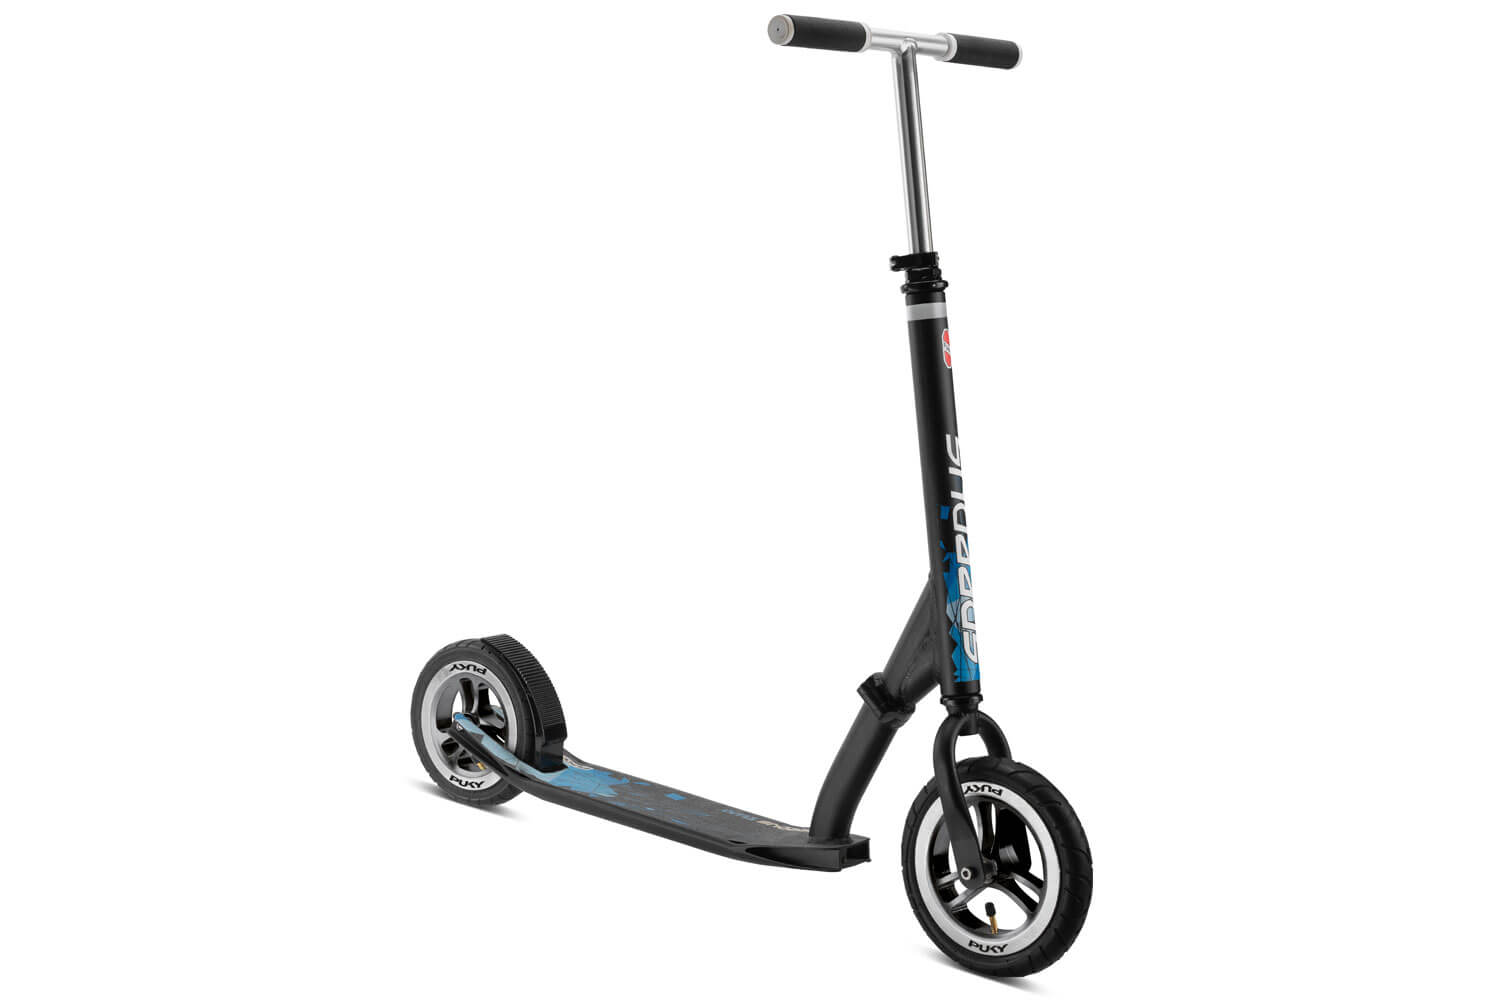 Puky Speedus Two Roller / Scooter